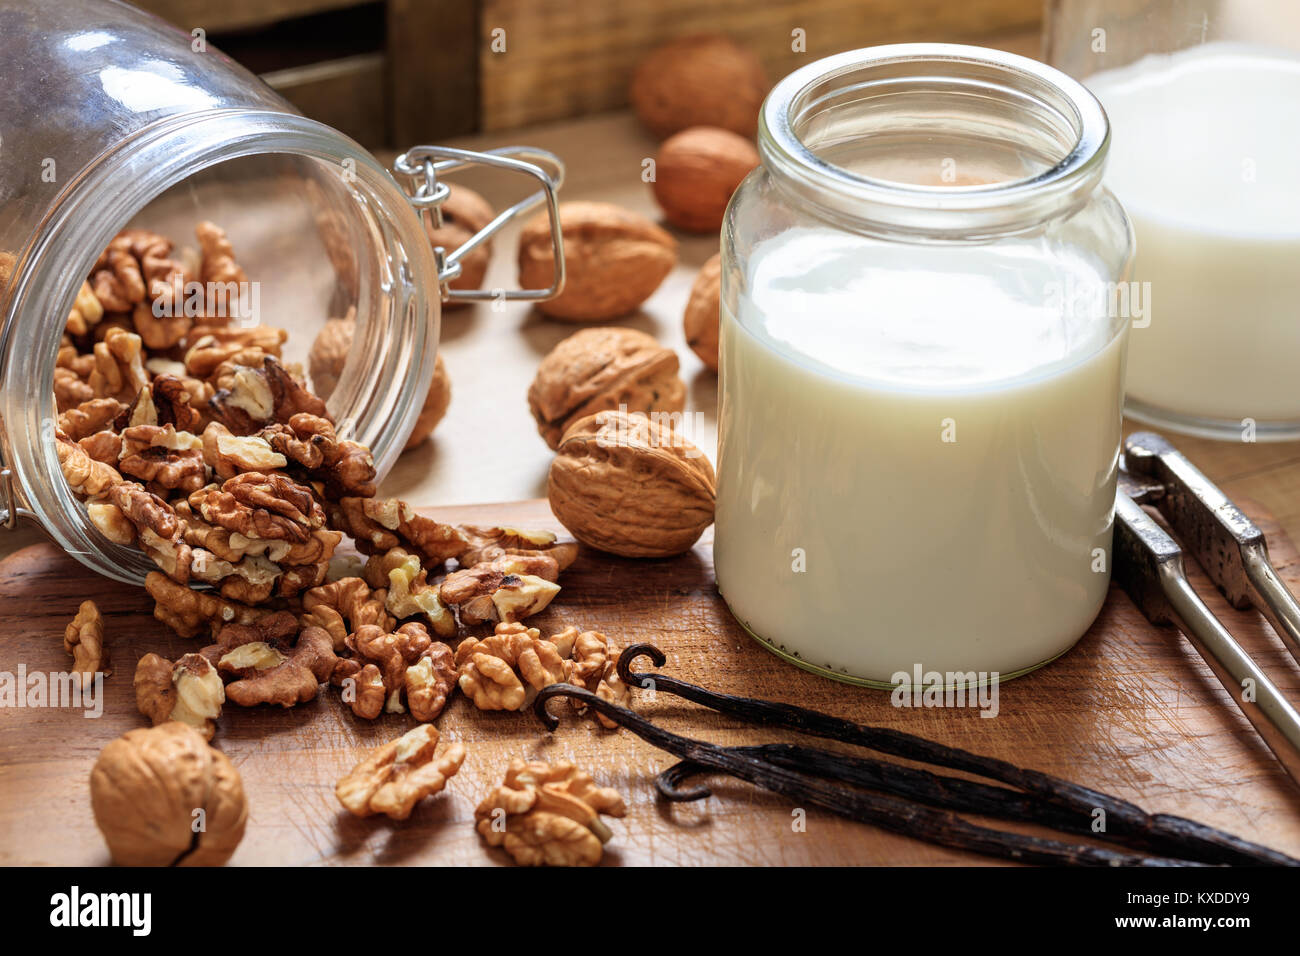 Vegan milk from walnuts on a wooden surface - Stock Image